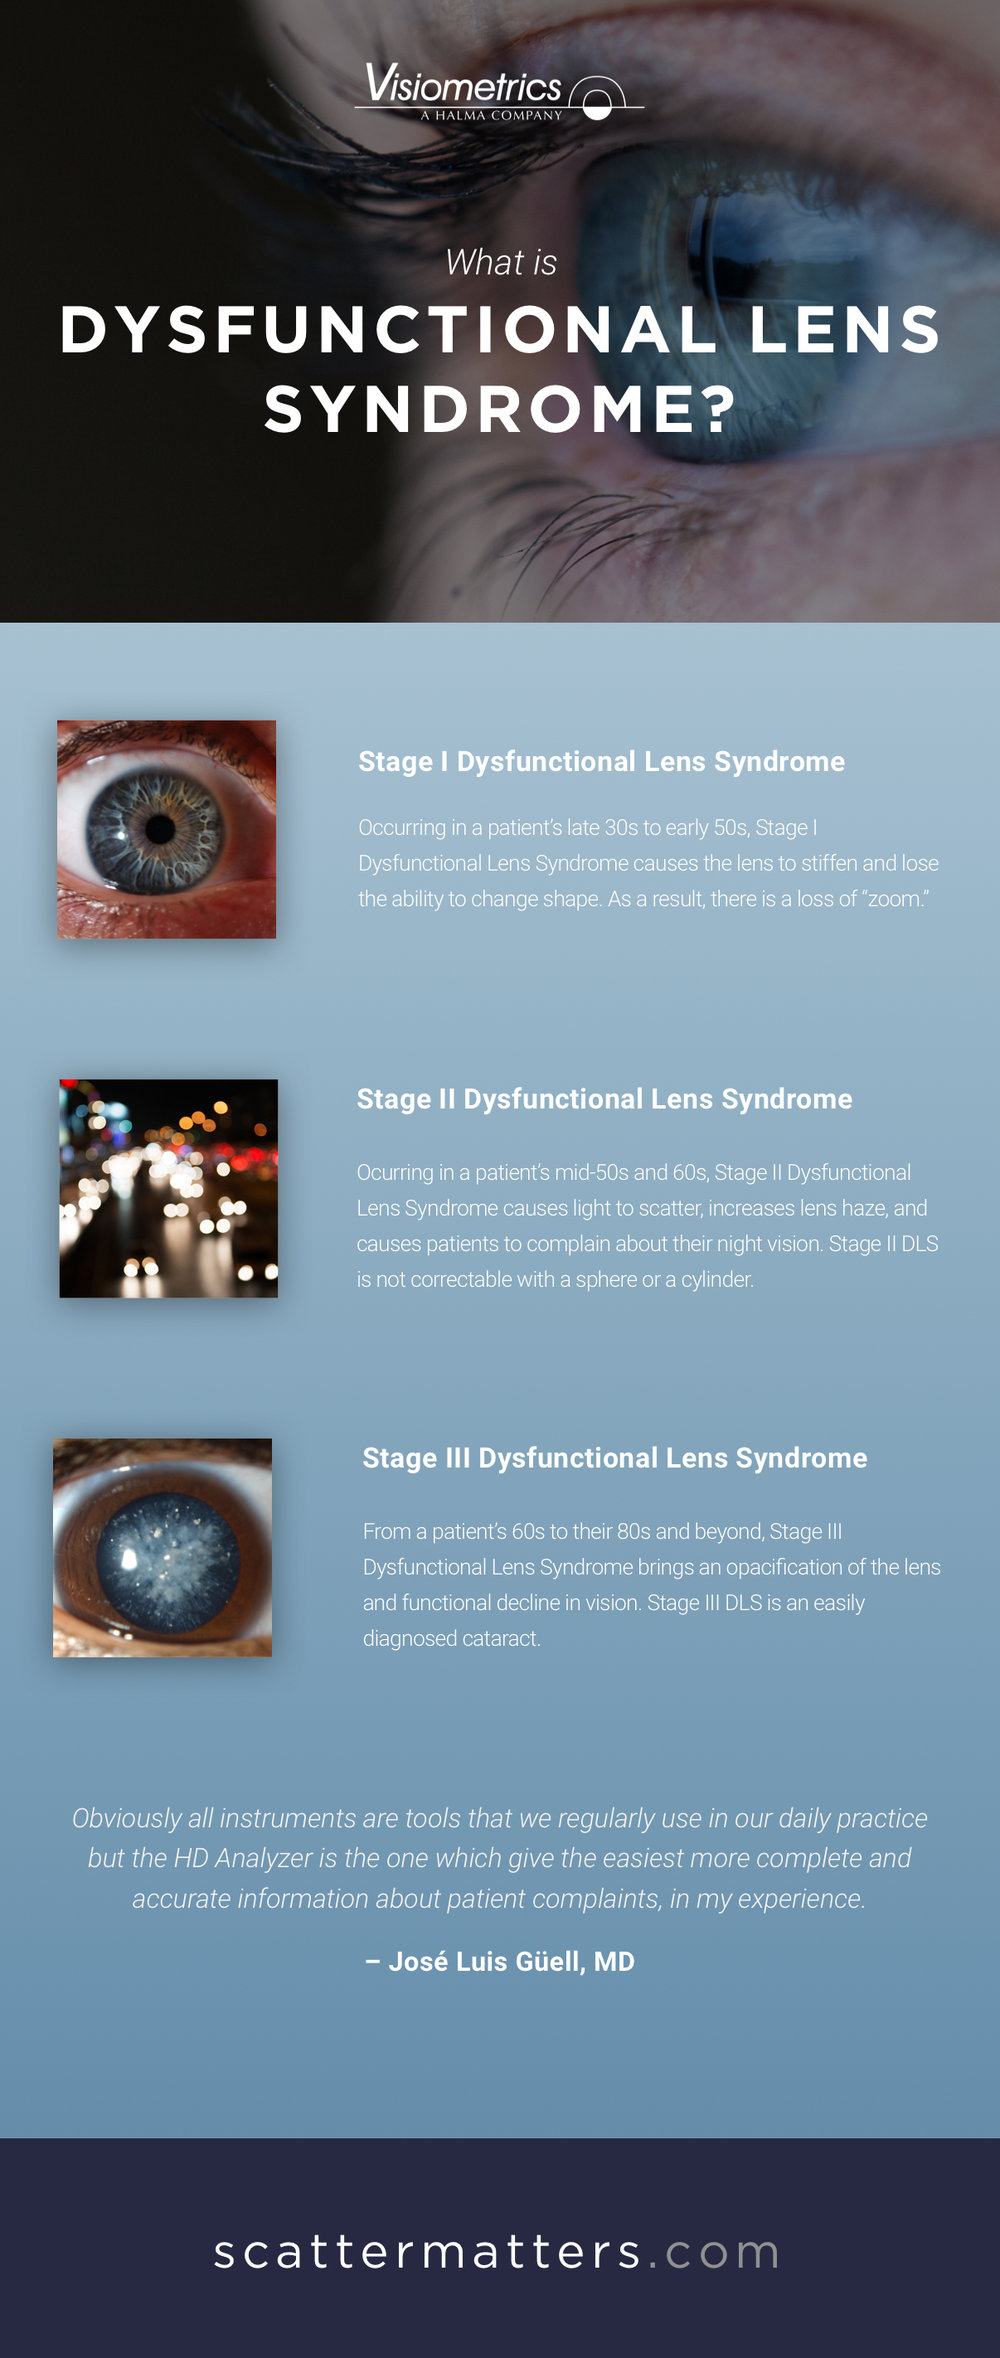 Banner educating patients and physicians about Dysfunctional Lens Syndrome (DLS)